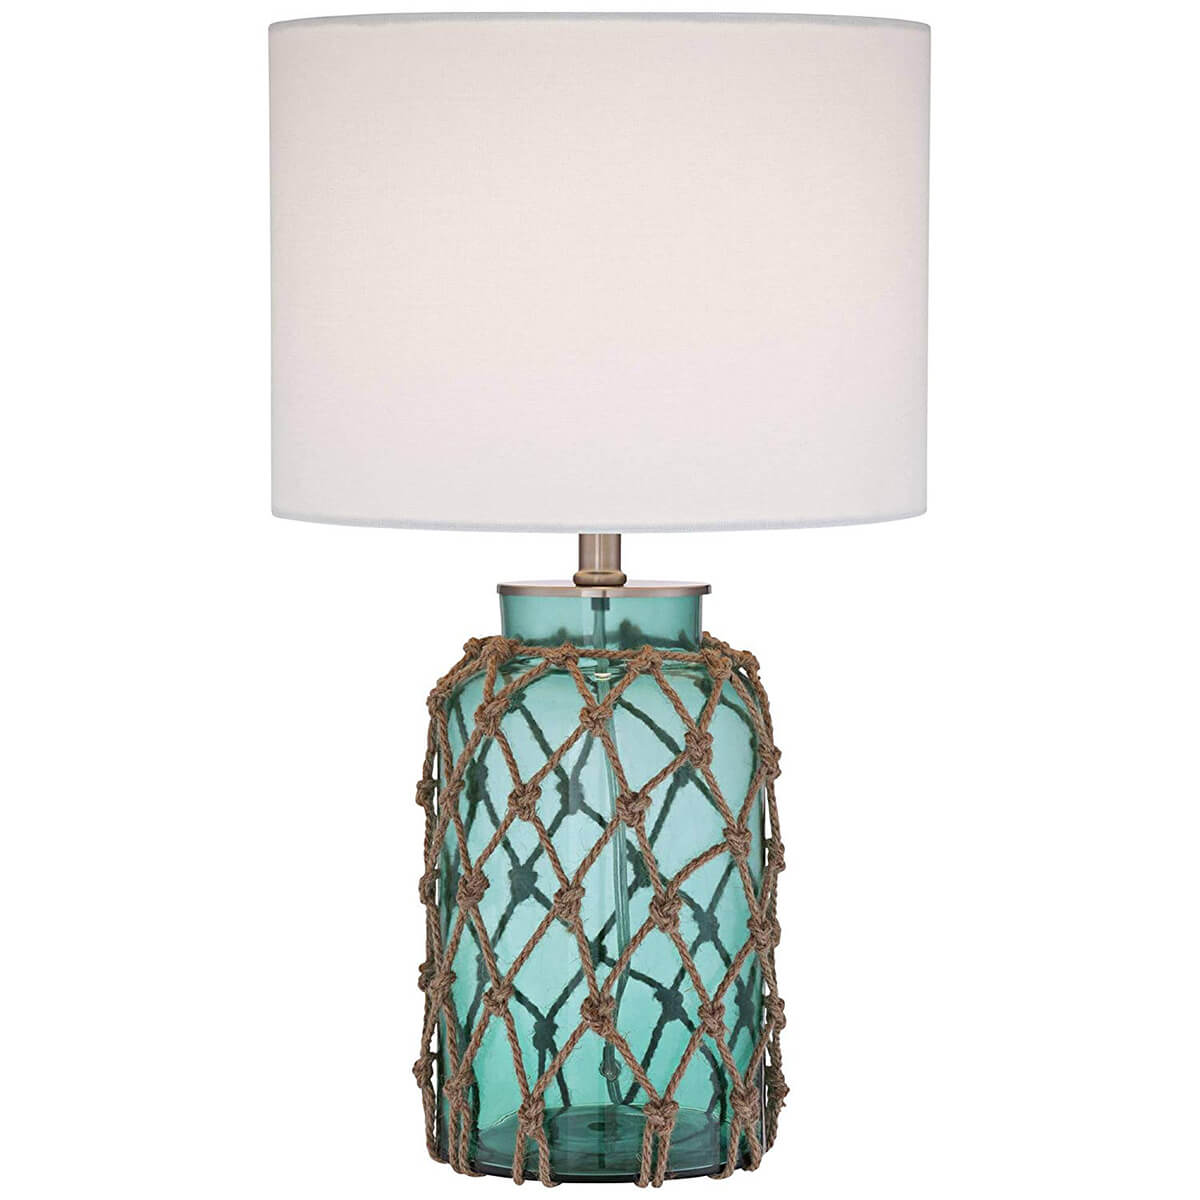 Aquatic Blue Glass and Natural Rope Lamp